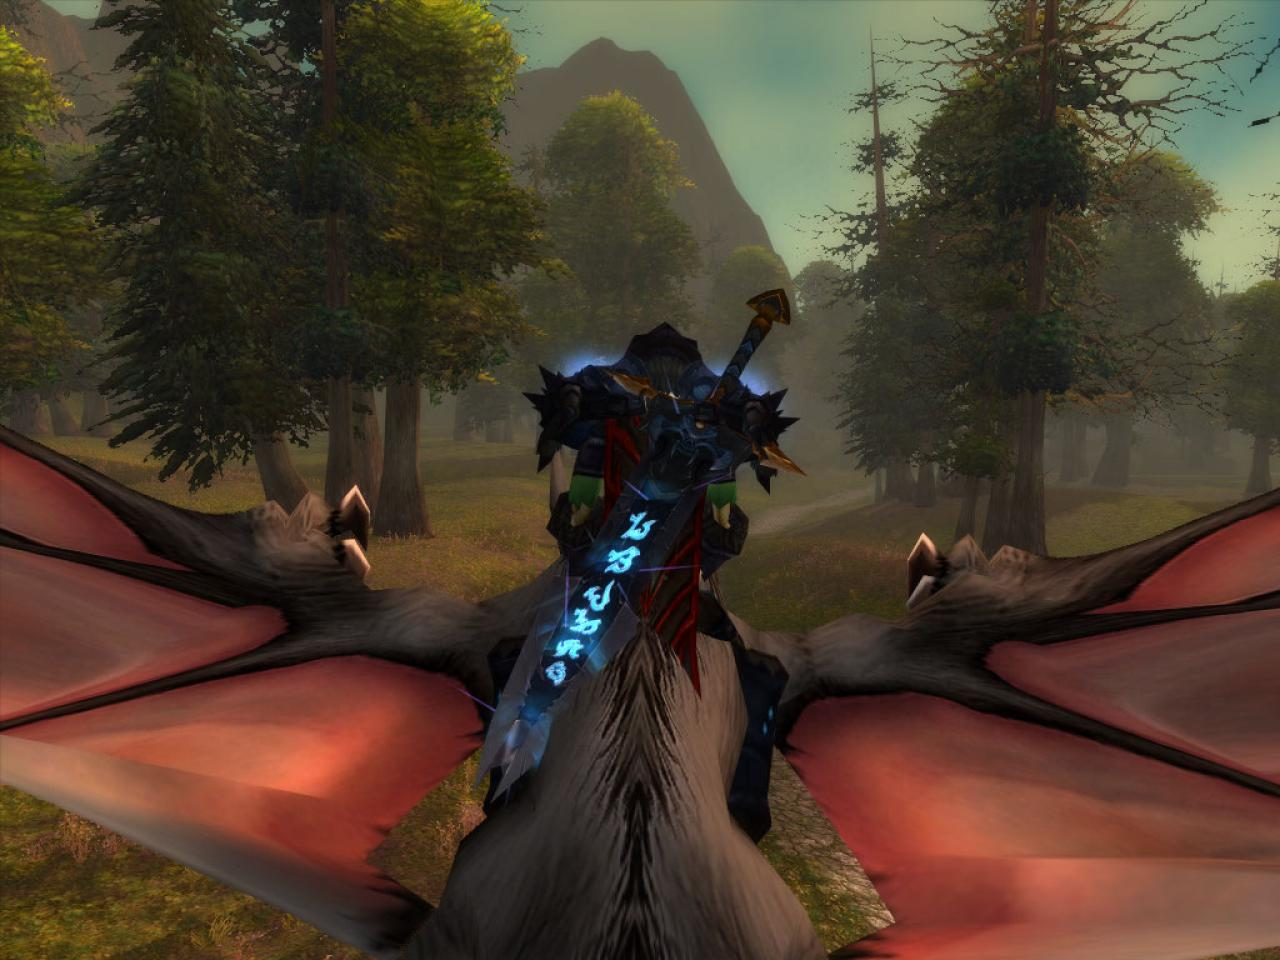 [21/07/08] Bilder aus den ersten Quests eines Todesritters in der Beta zu Wrath of the Lich King.